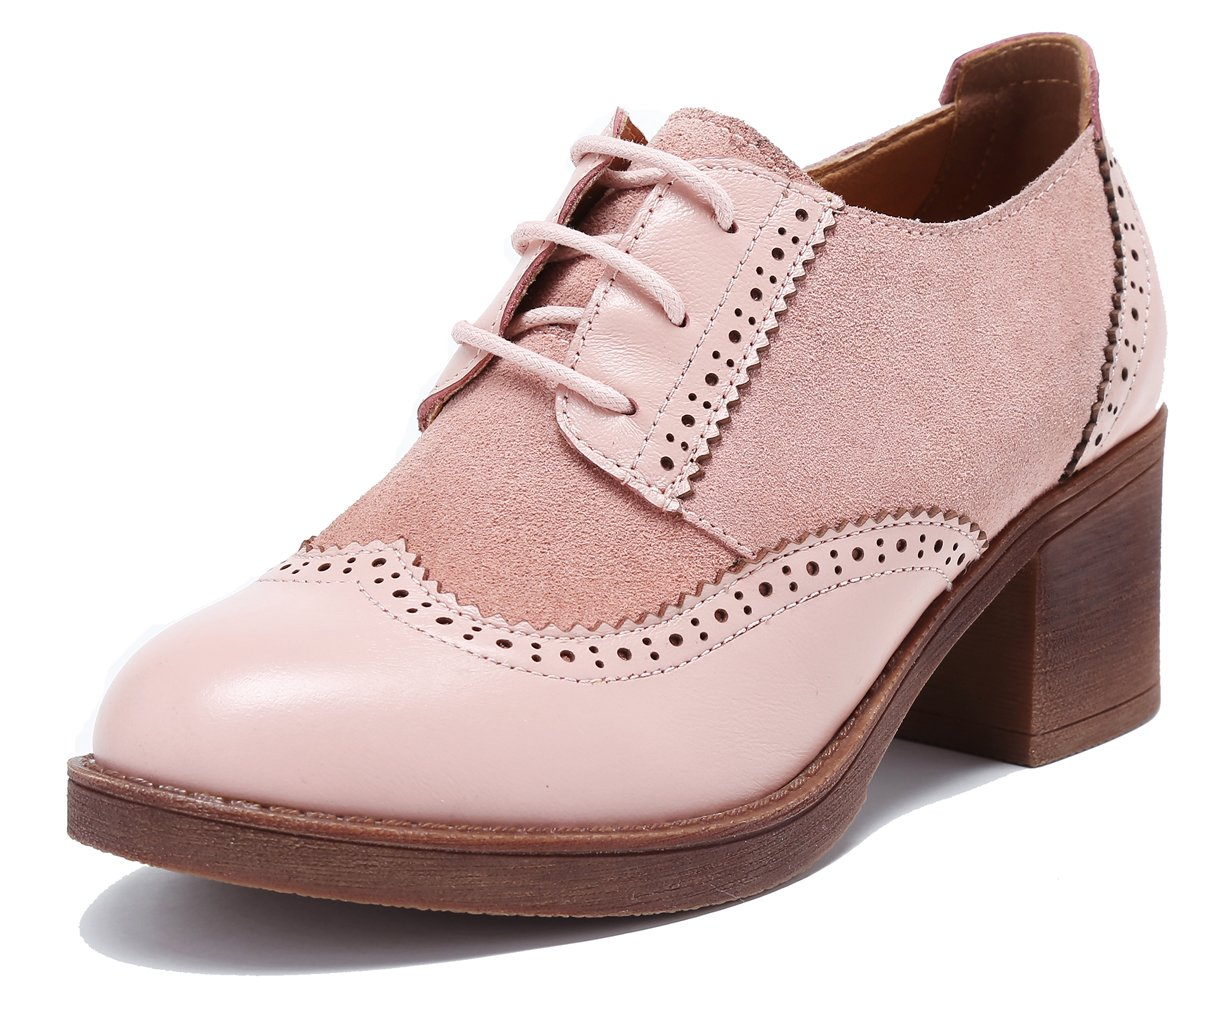 U-lite Womens Suede Genuine Leather Mid-Heel Pump Dress Oxfords, Perforated Lace-up Round-Toe Brouge Shoes B07BKRJ5DX 6 B(M) US|Pink